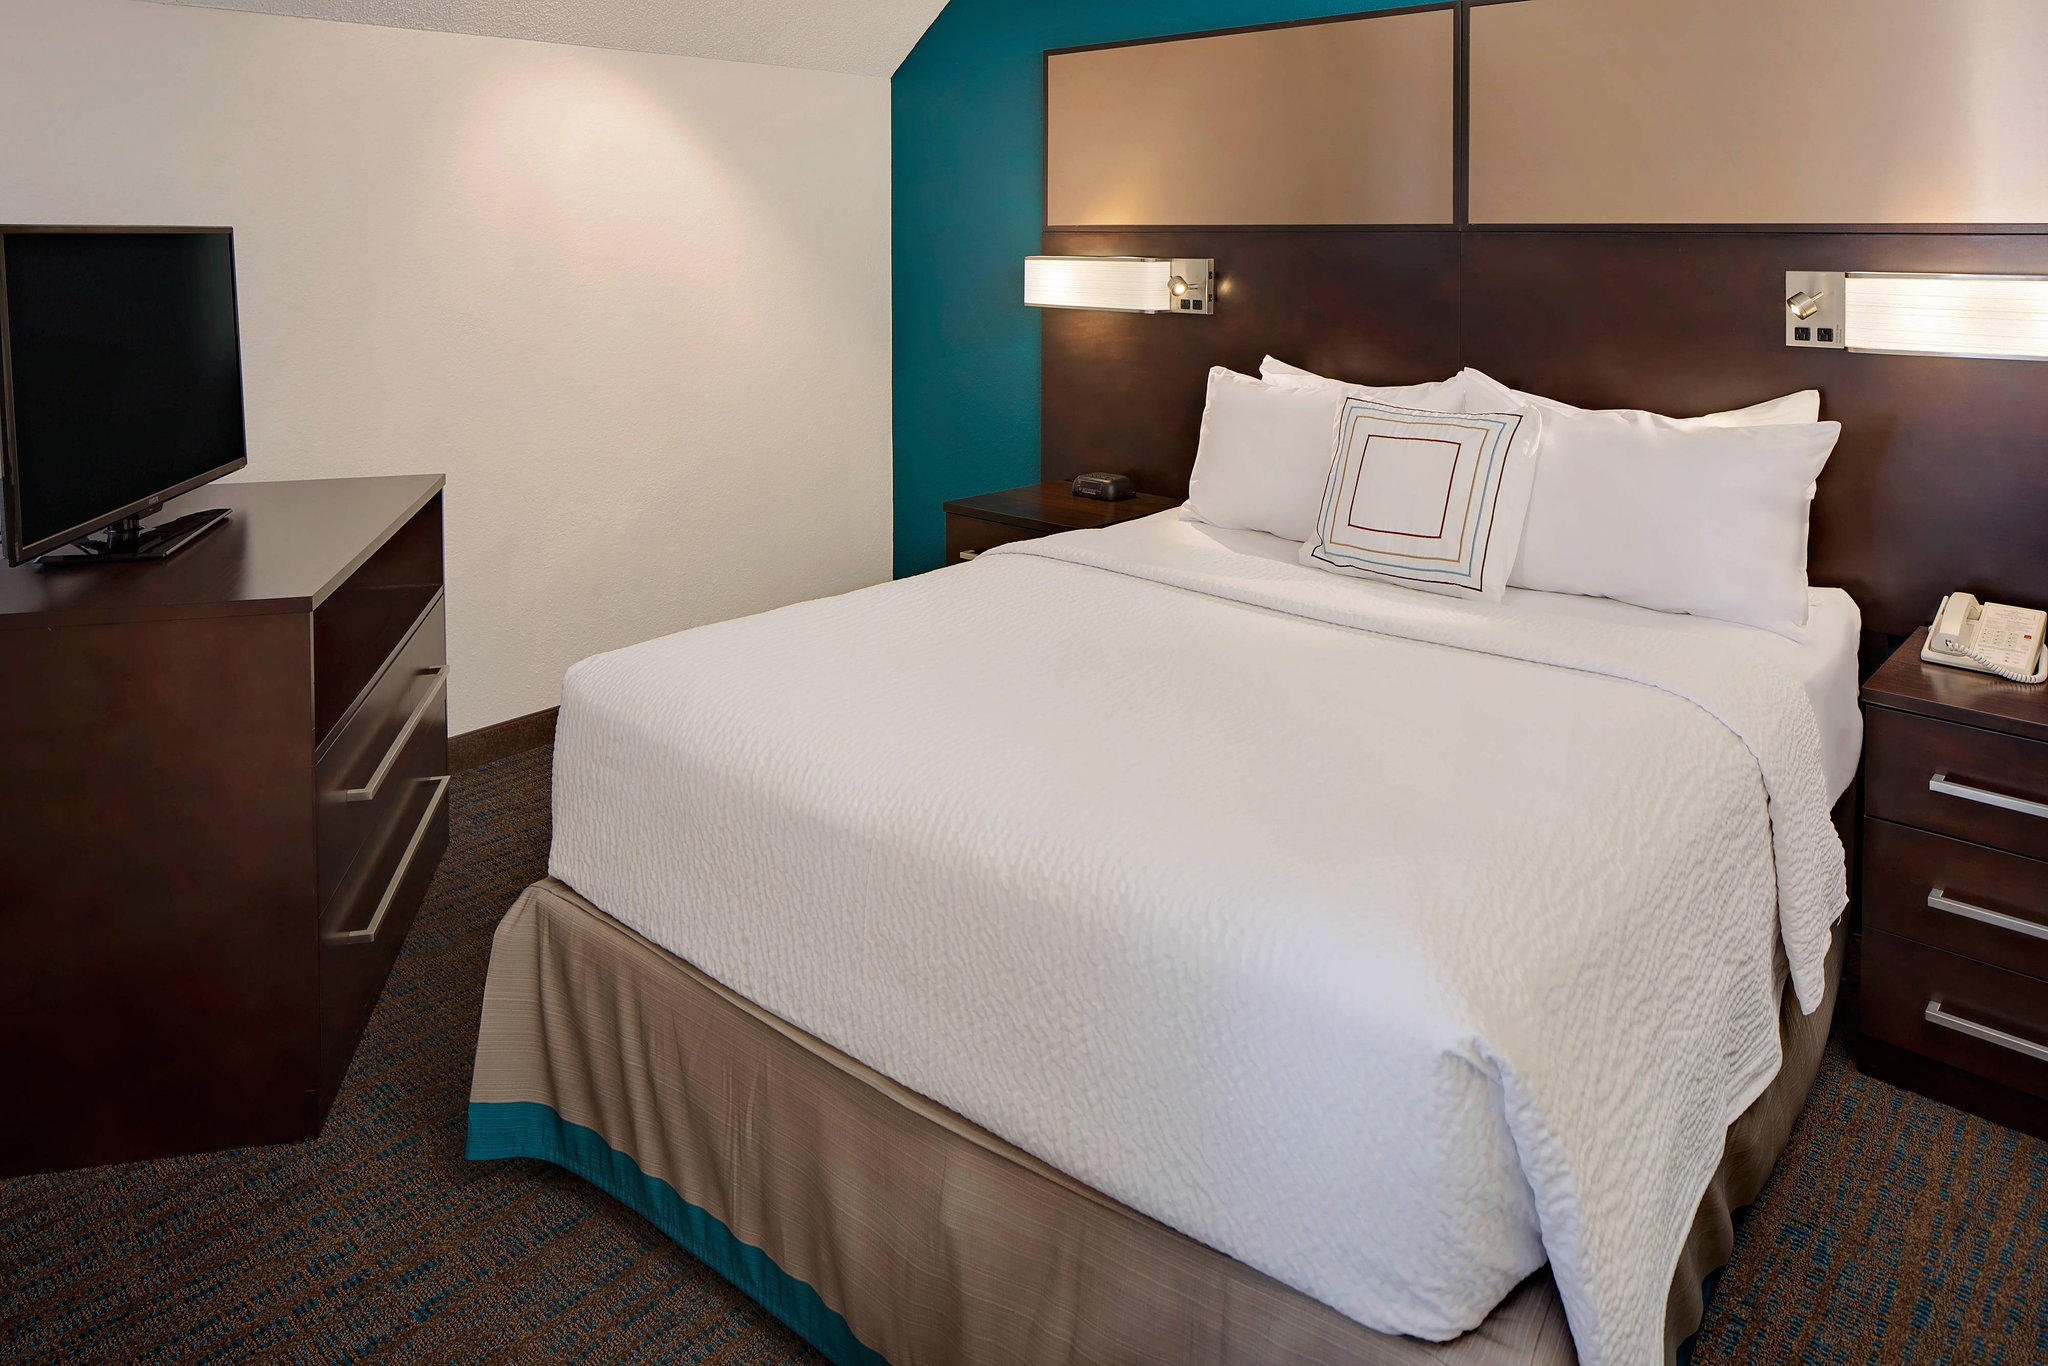 Residence Inn by Marriott Fremont Silicon Valley